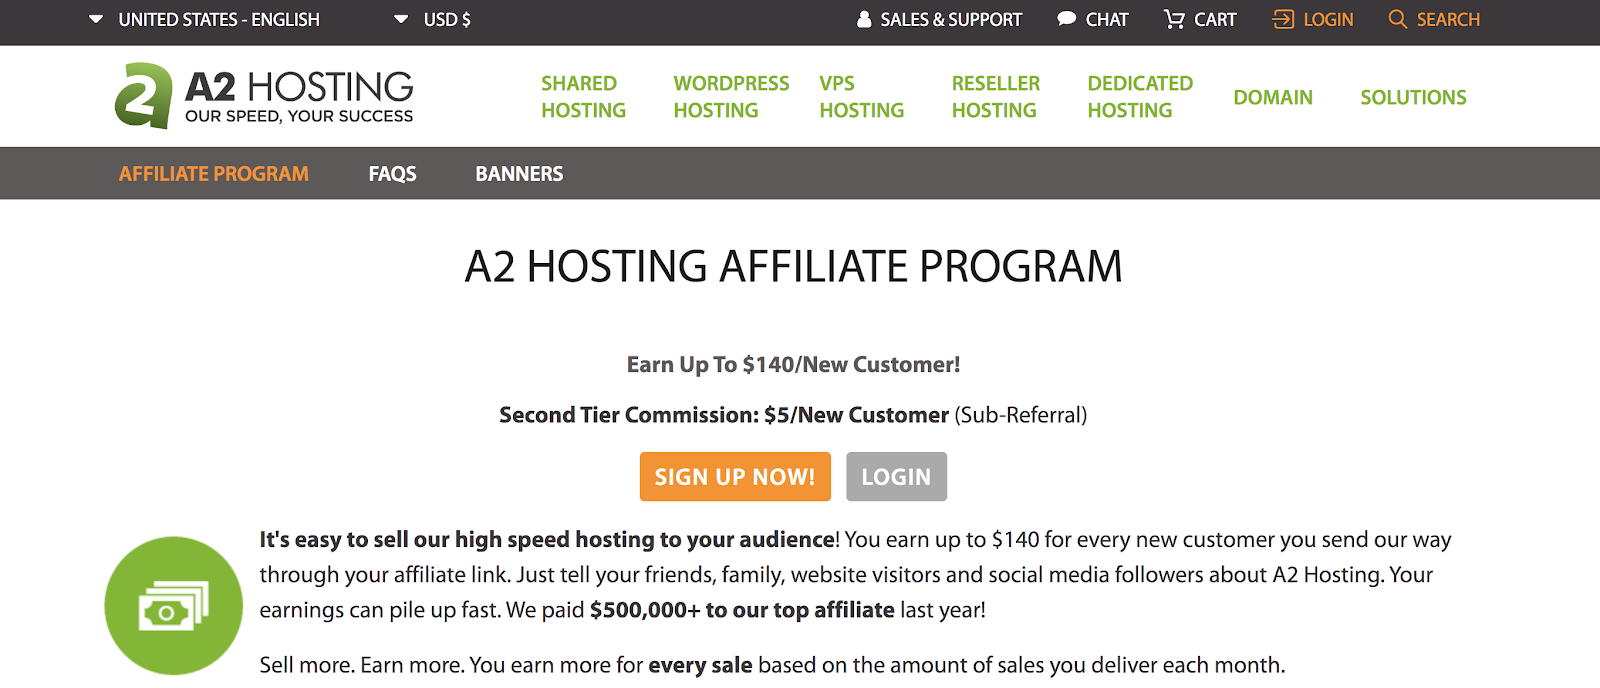 A2 Hosting Referral Program Page (Screenshot)